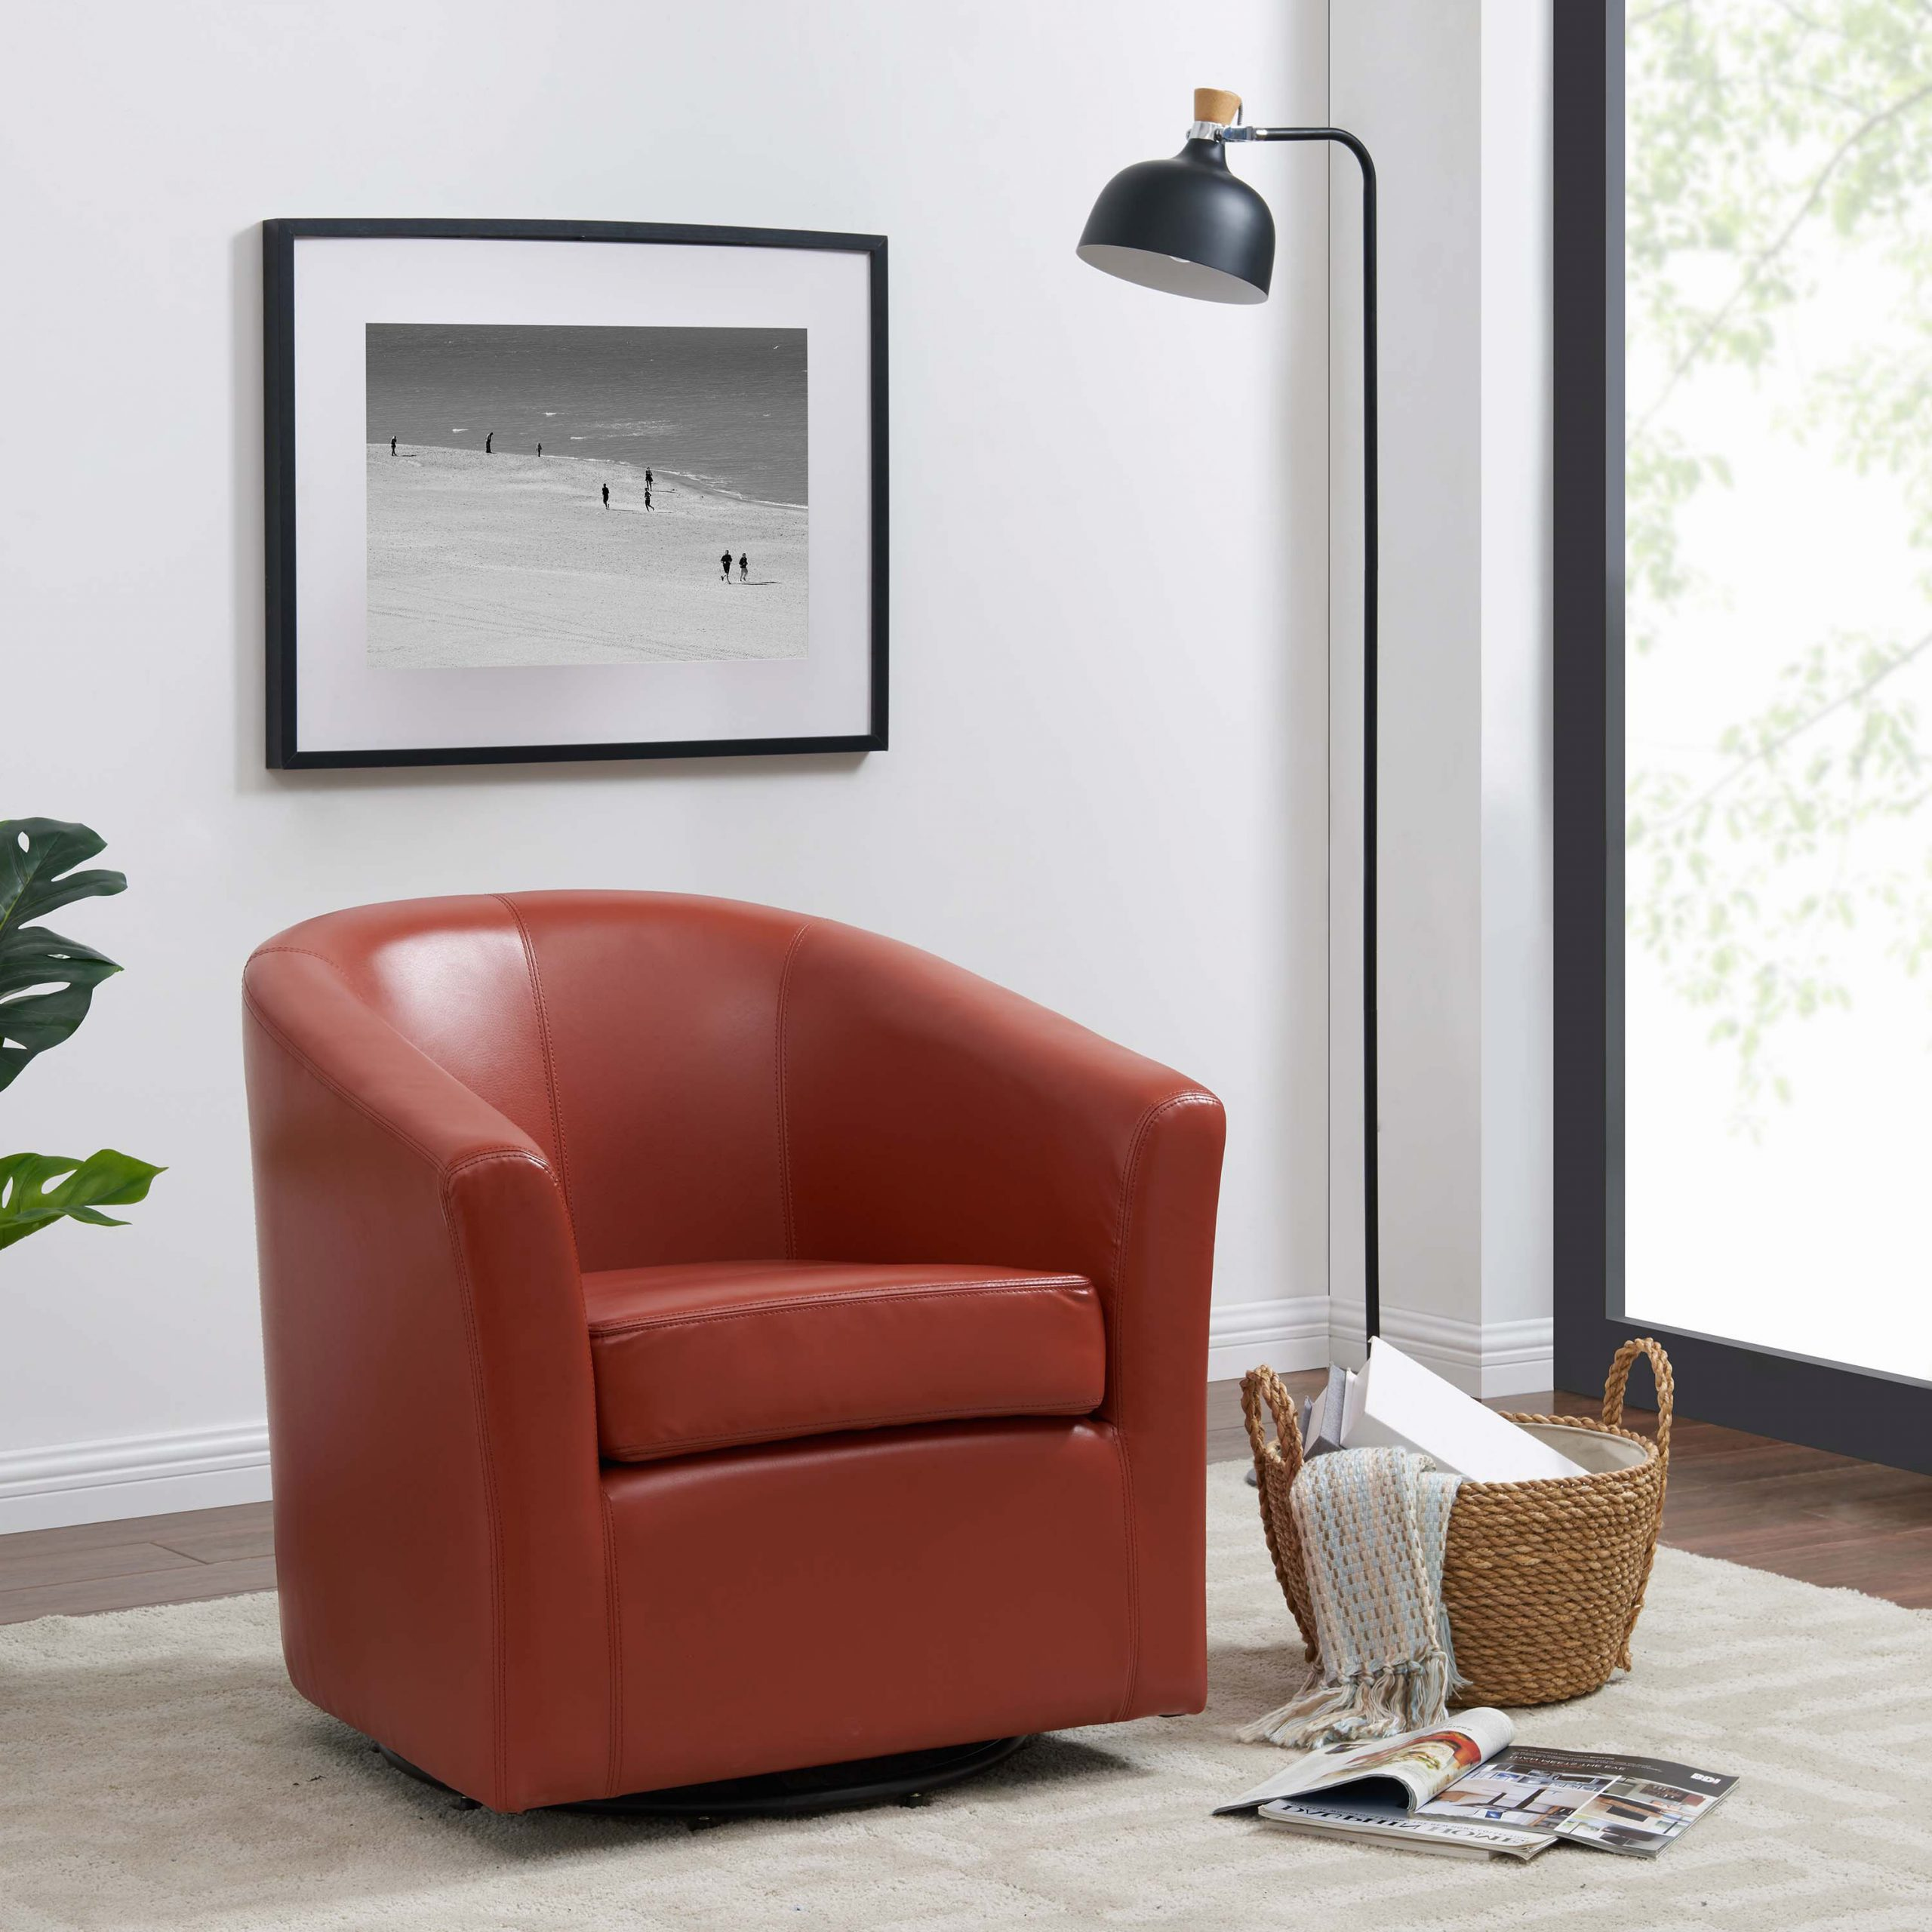 Dorcaster Barrel Chairs With Well Known Harmon Cloud Barrel Chair And Ottoman (View 17 of 20)